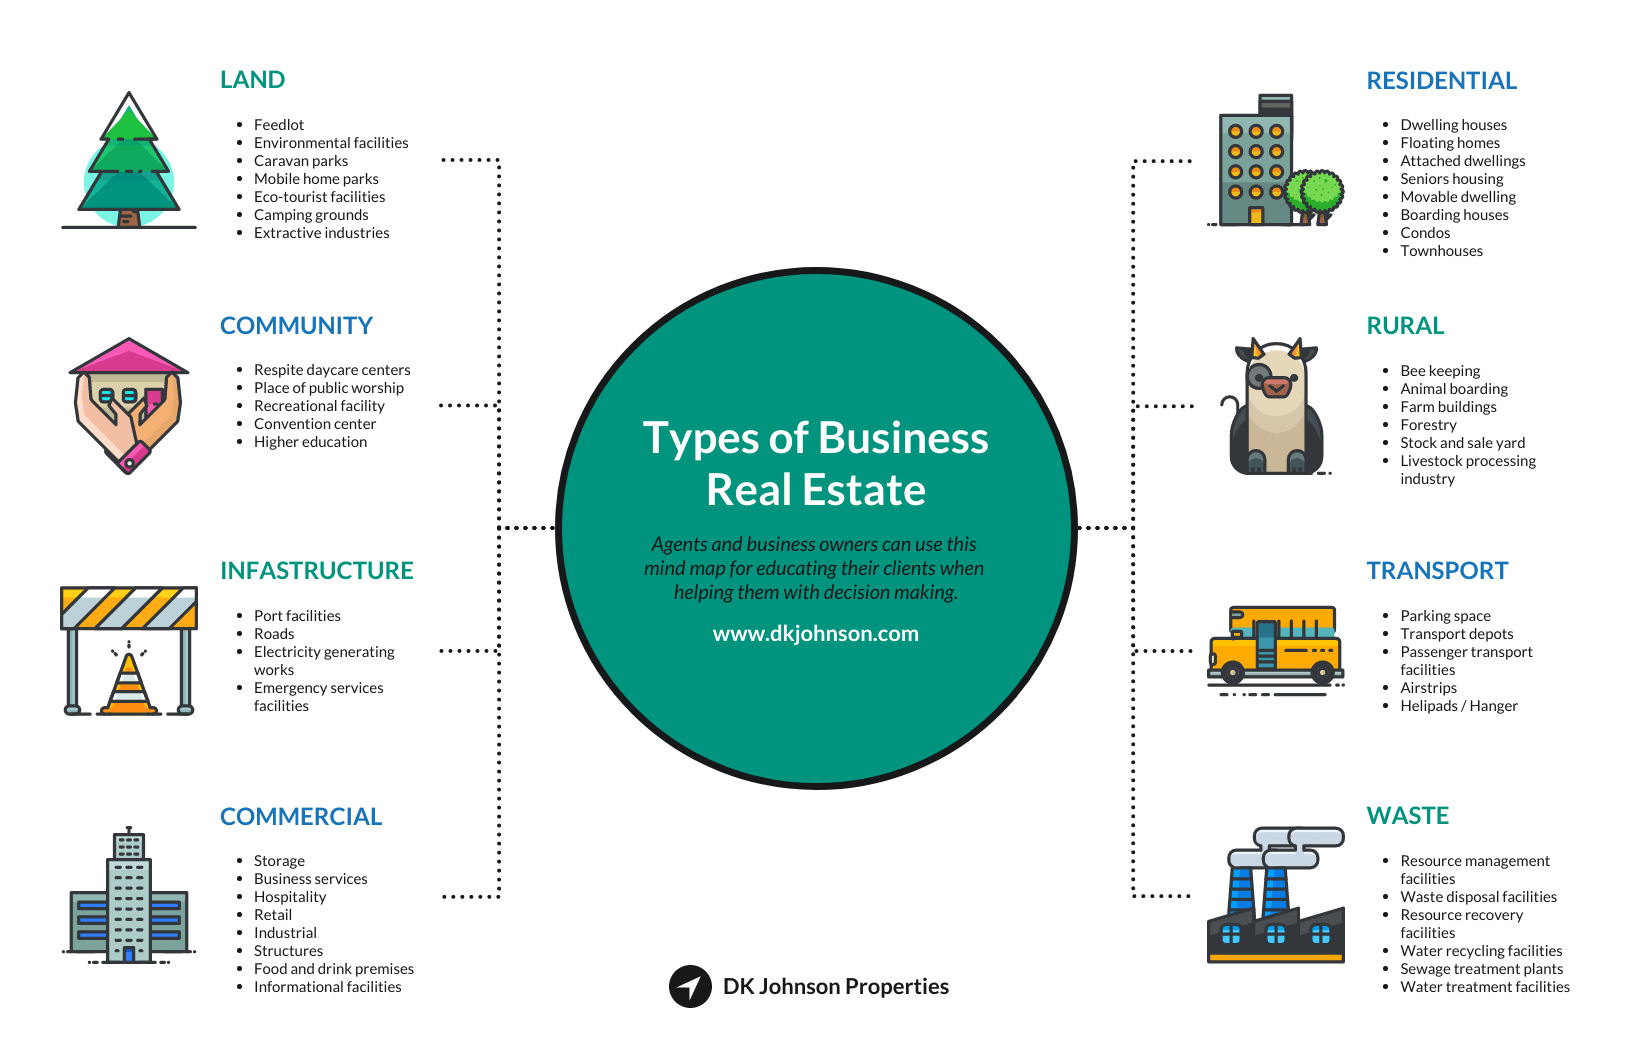 Types of Business Real Estate Mind Map Template